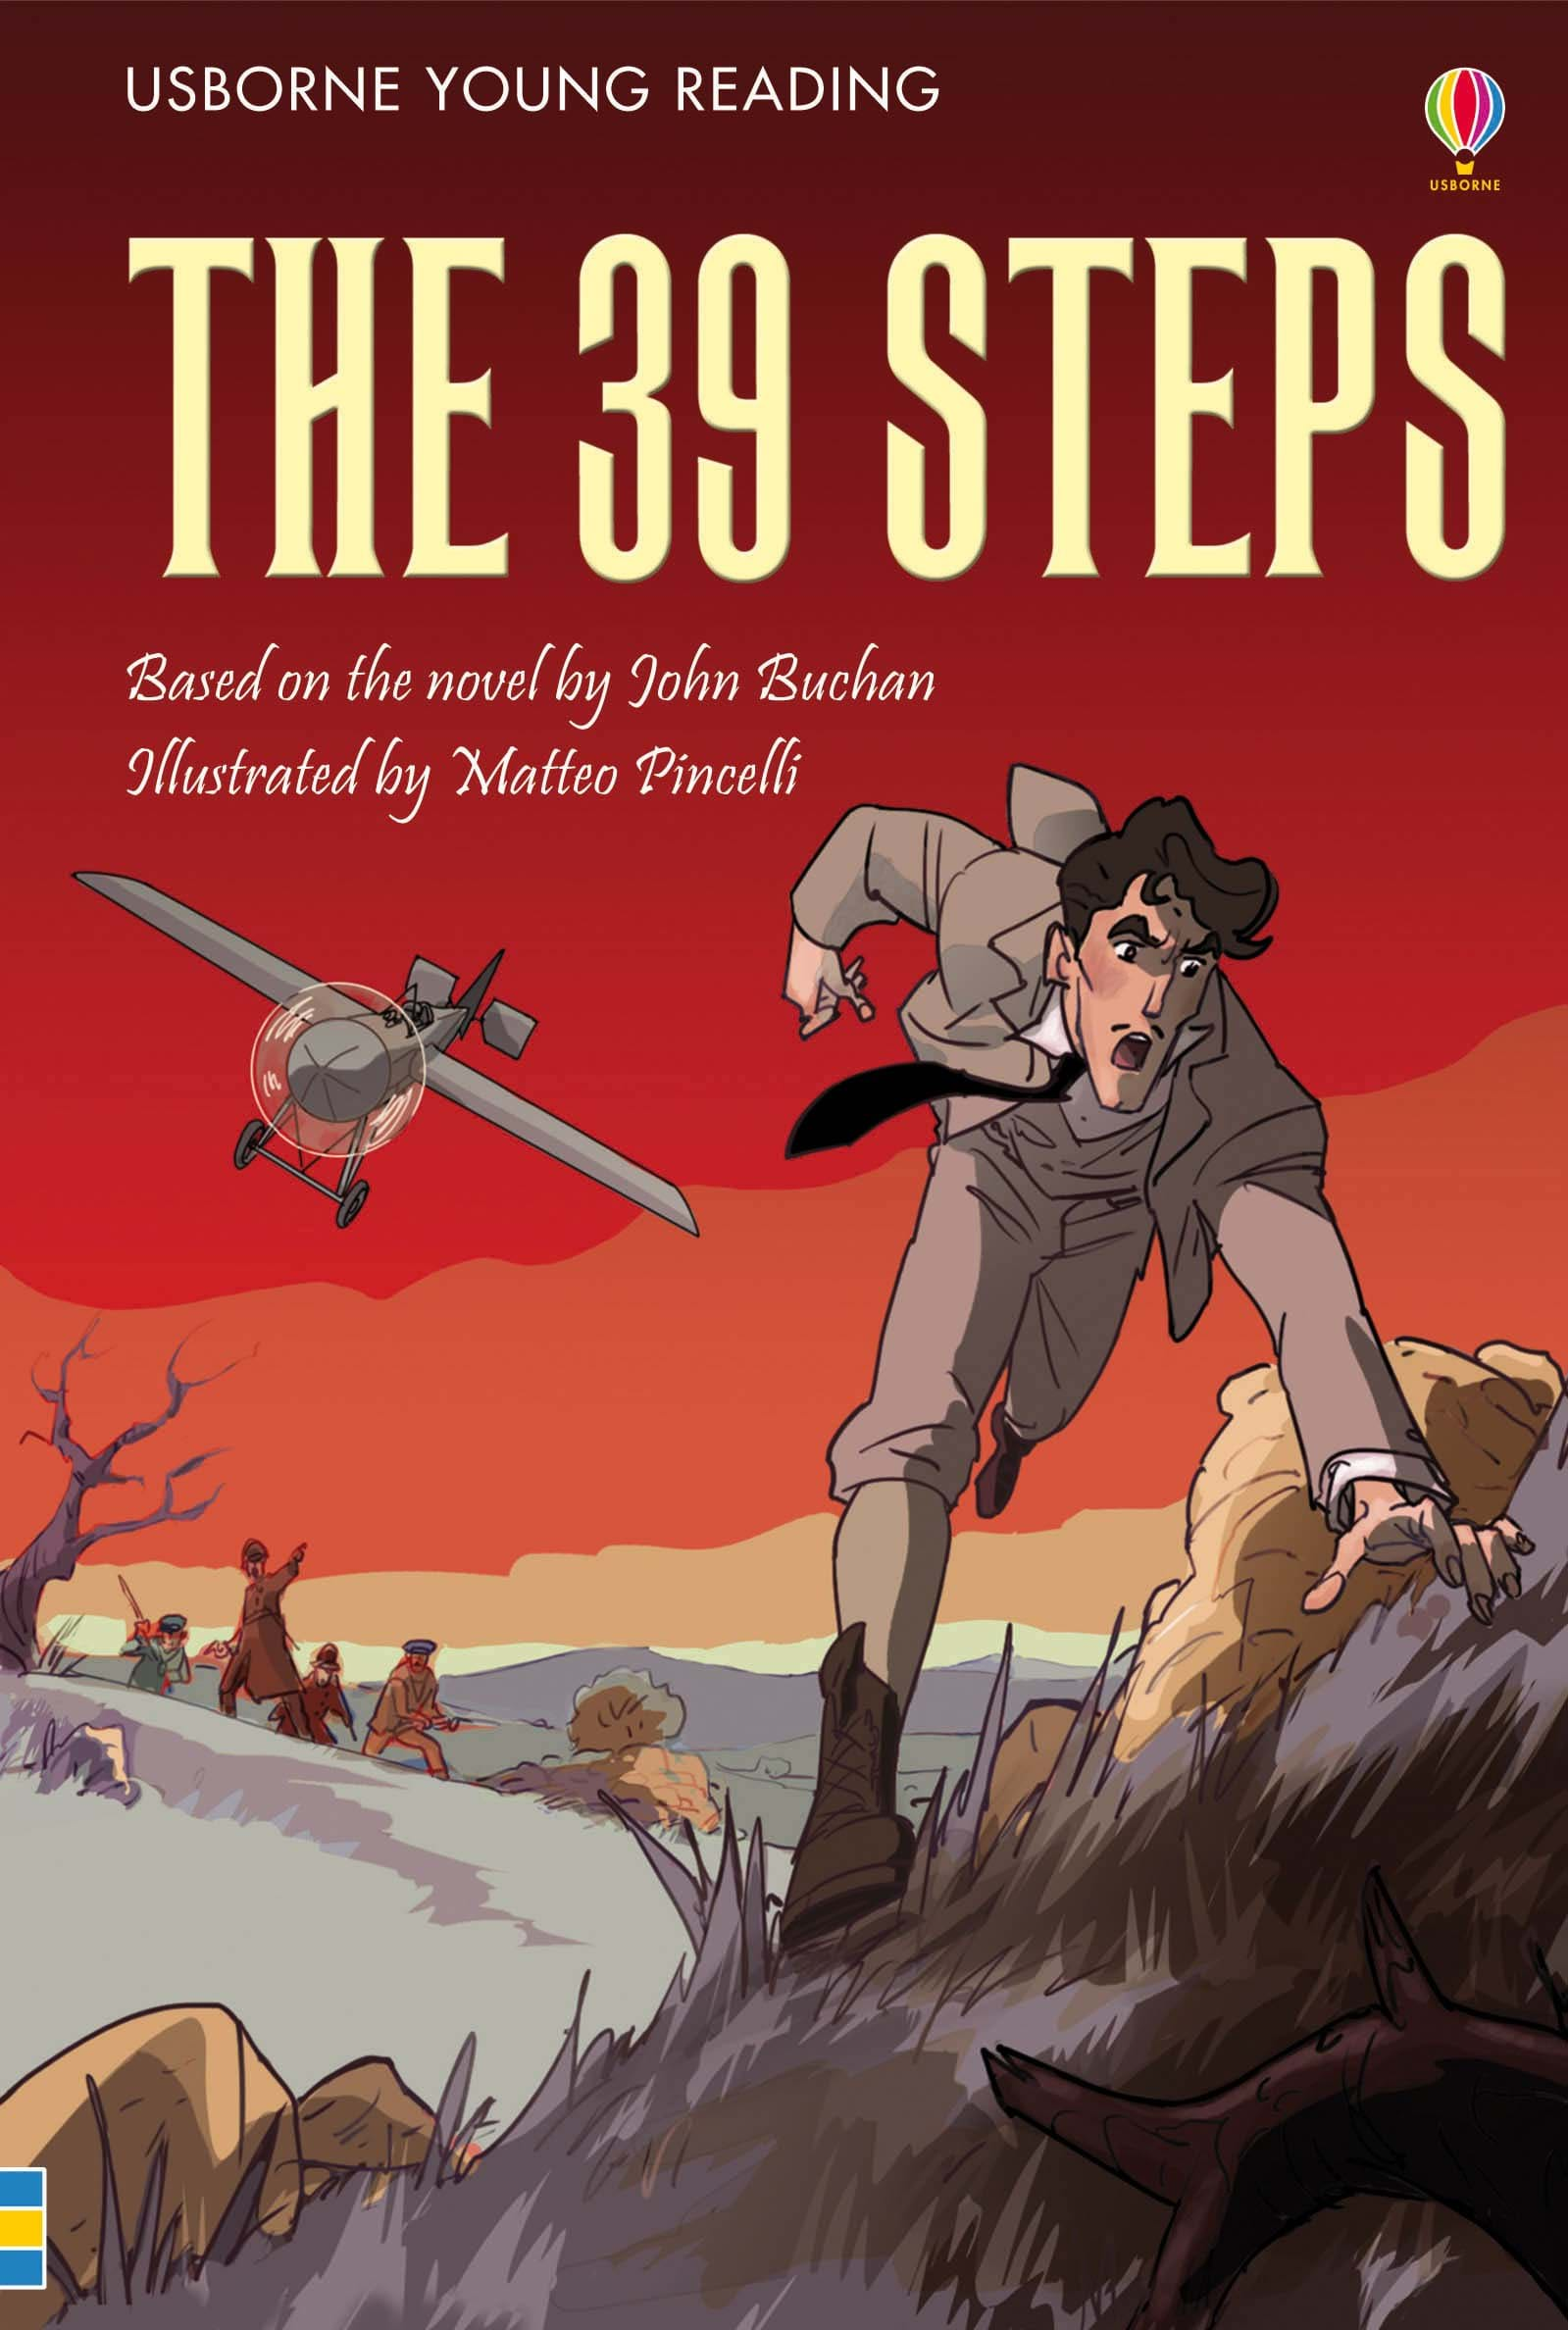 u201cthe 39 steps u201d at usborne children u2019s books